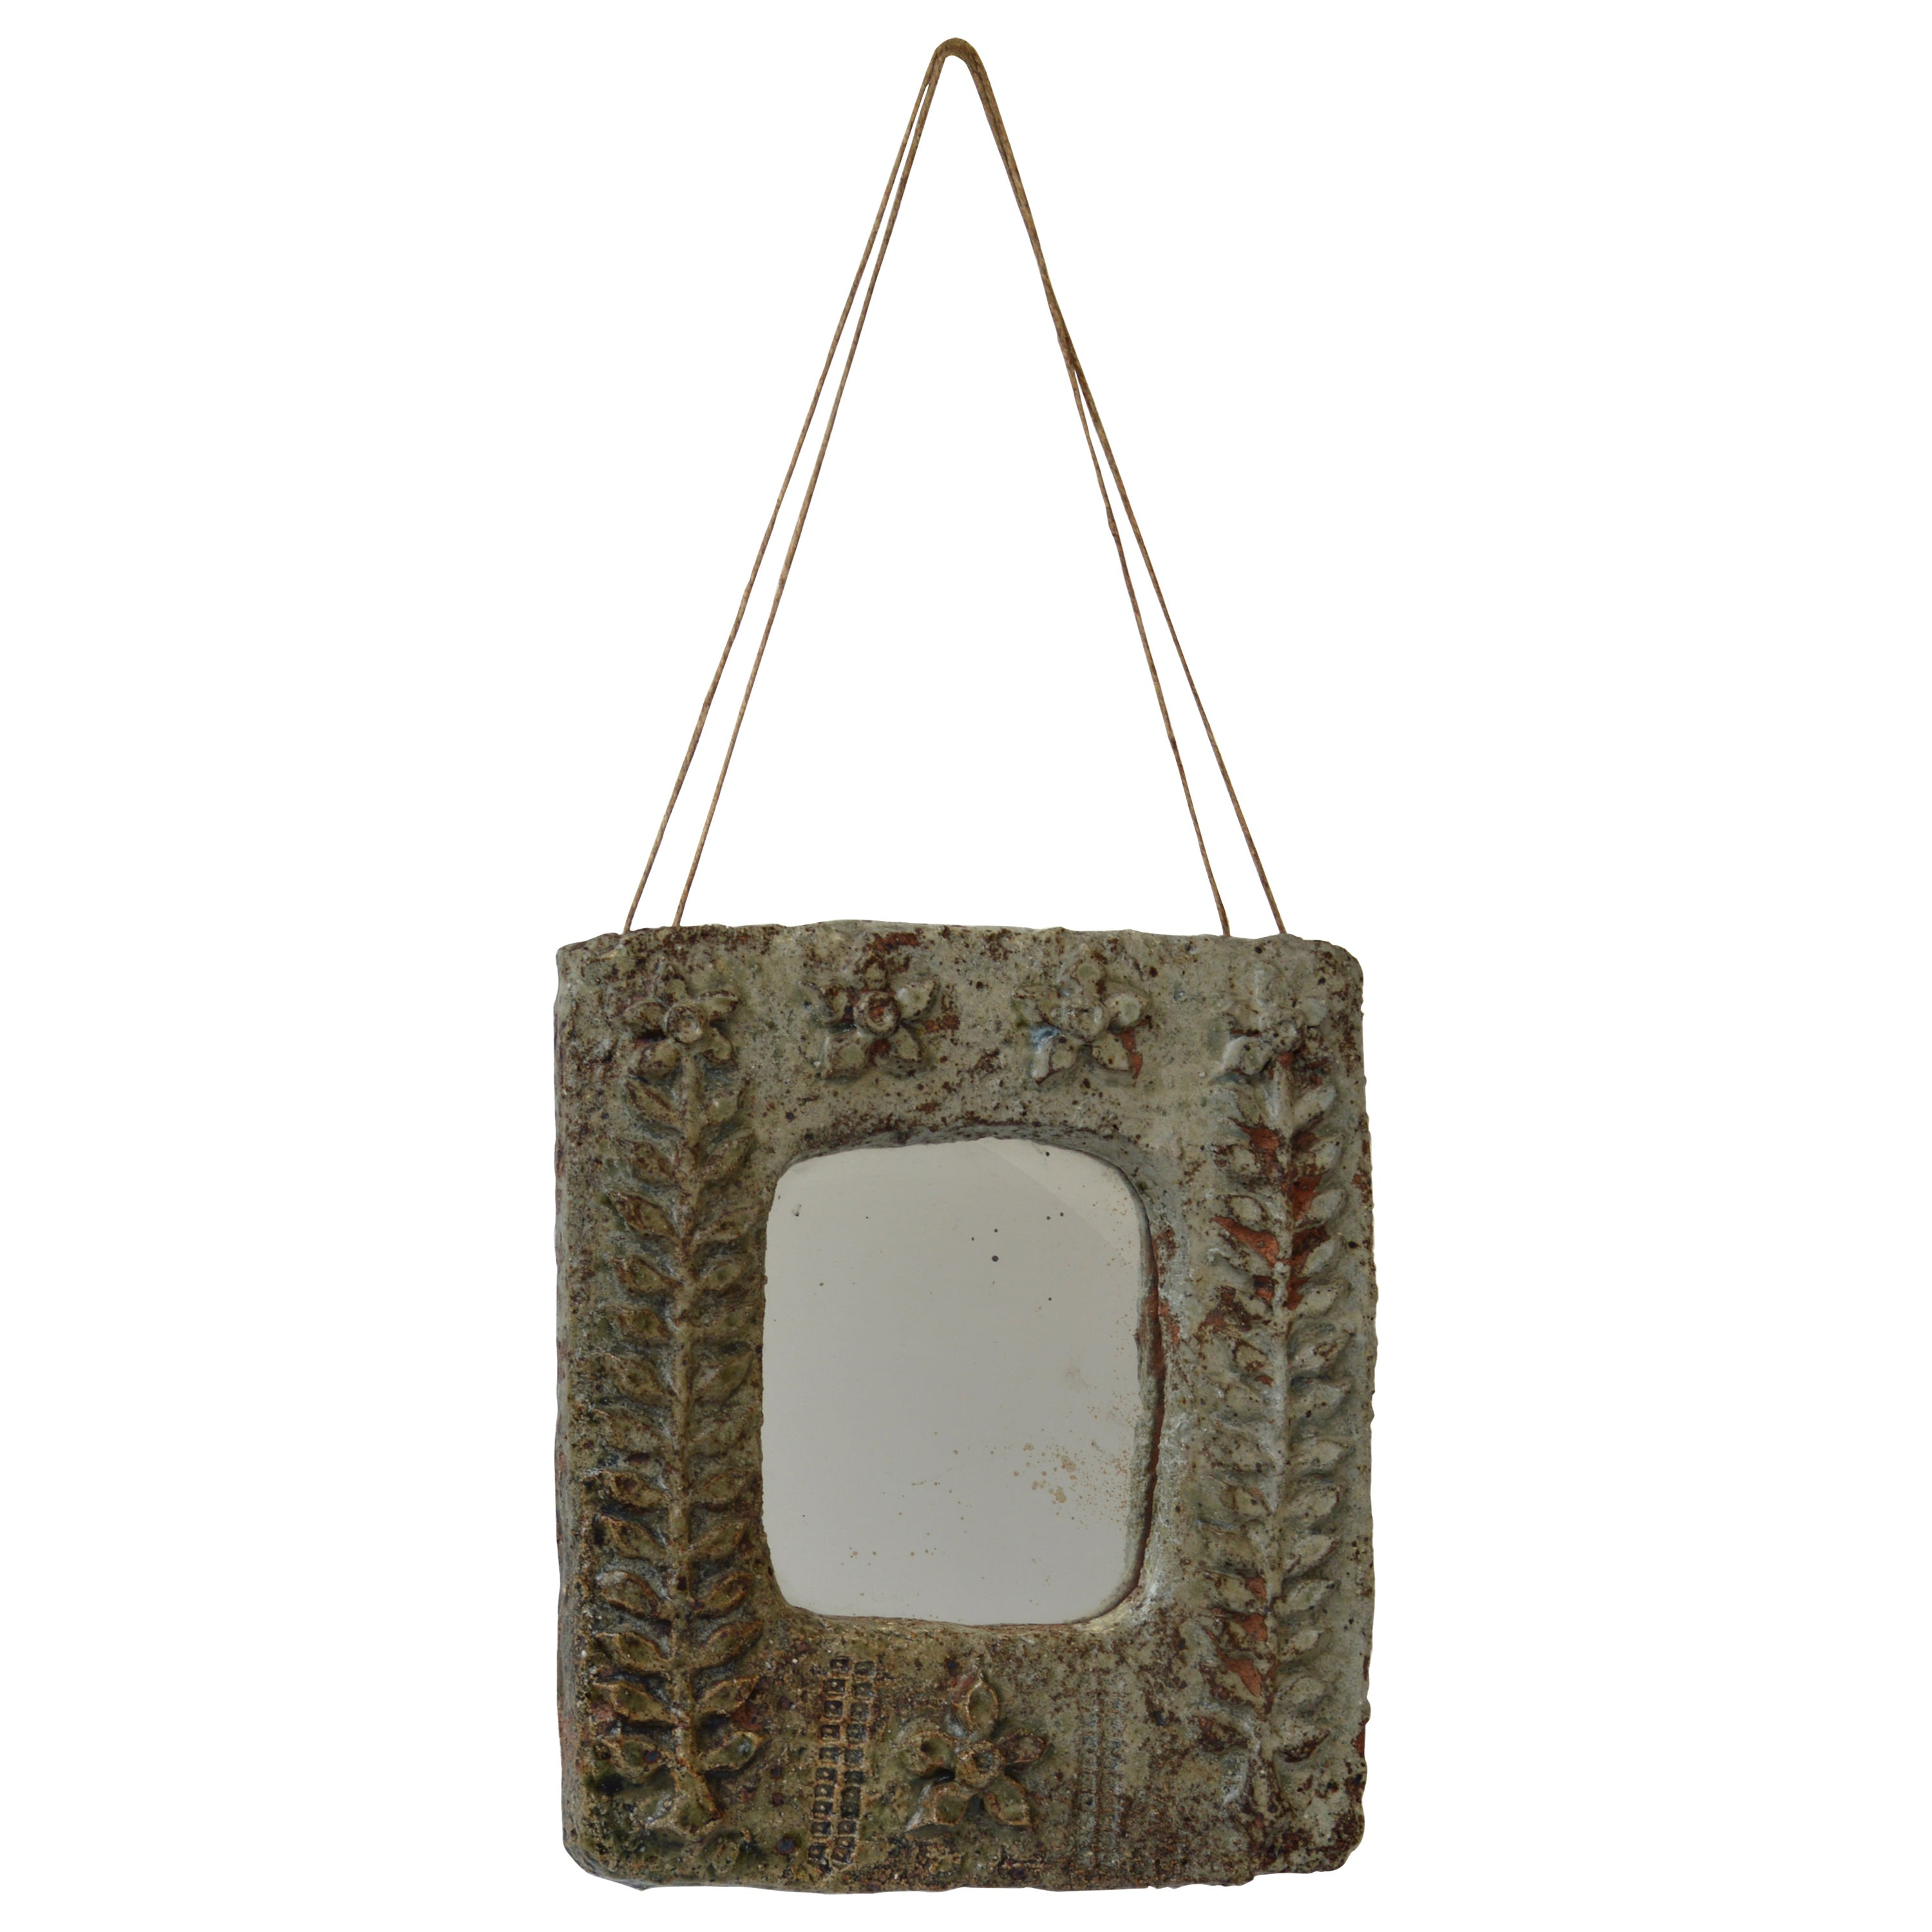 Motif Relief Vintage Ceramic Wall Mirror With Relief Botanical Motif